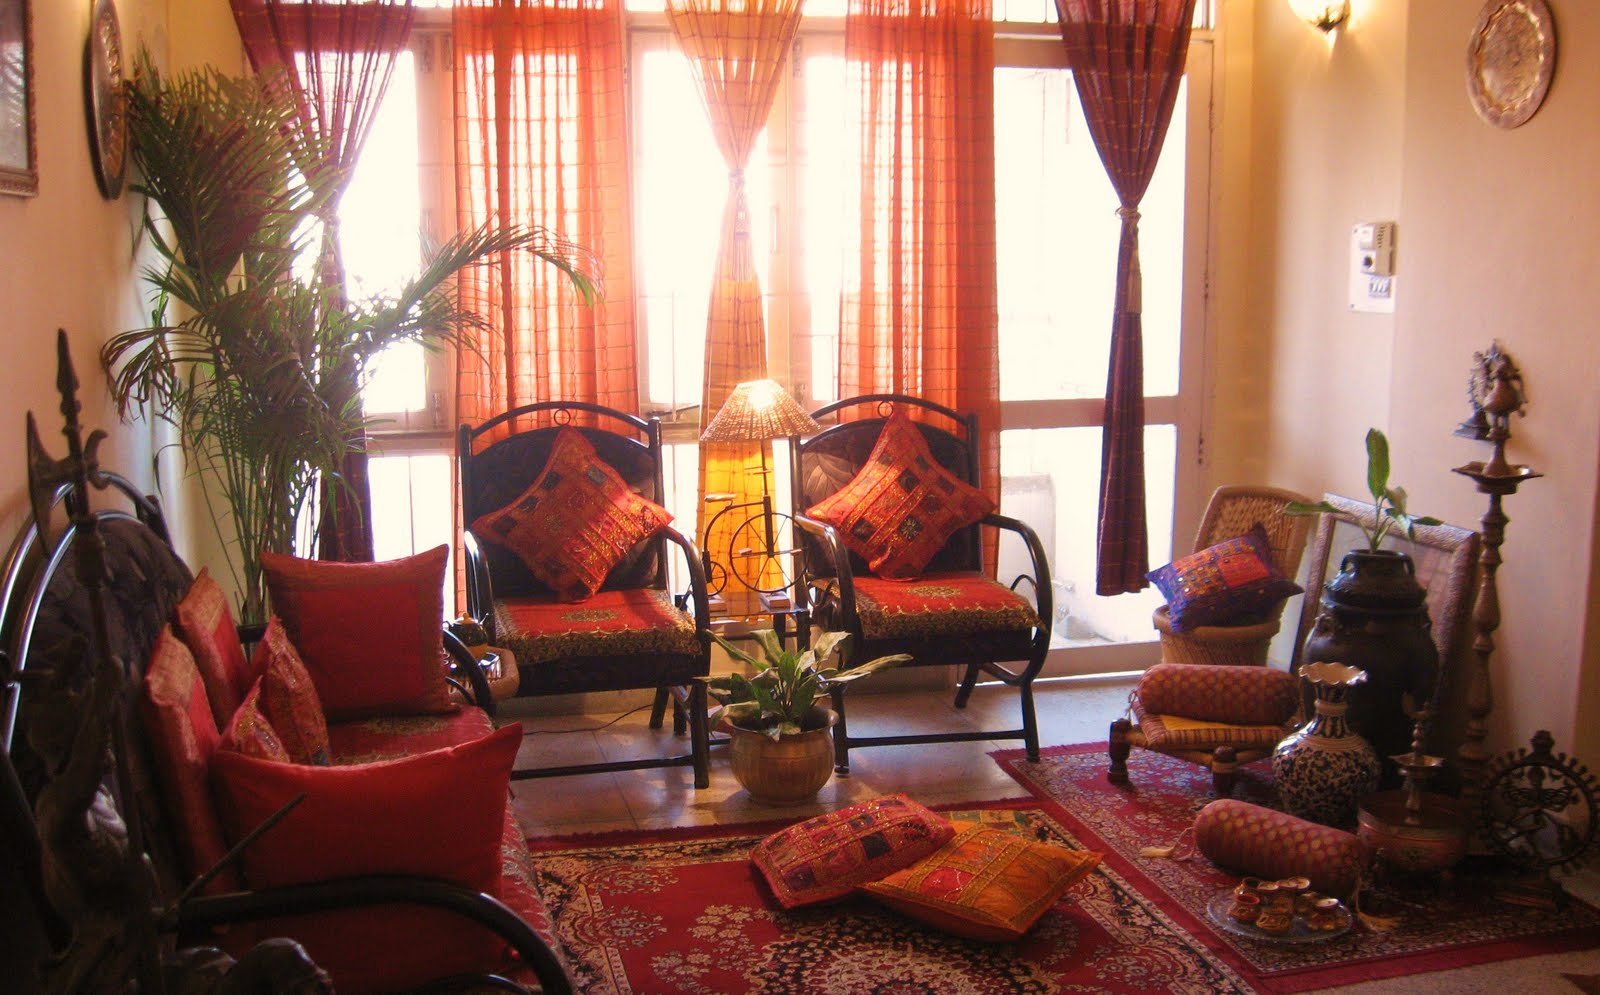 Warm colors house design decor style decor ideas home for Traditional home decor